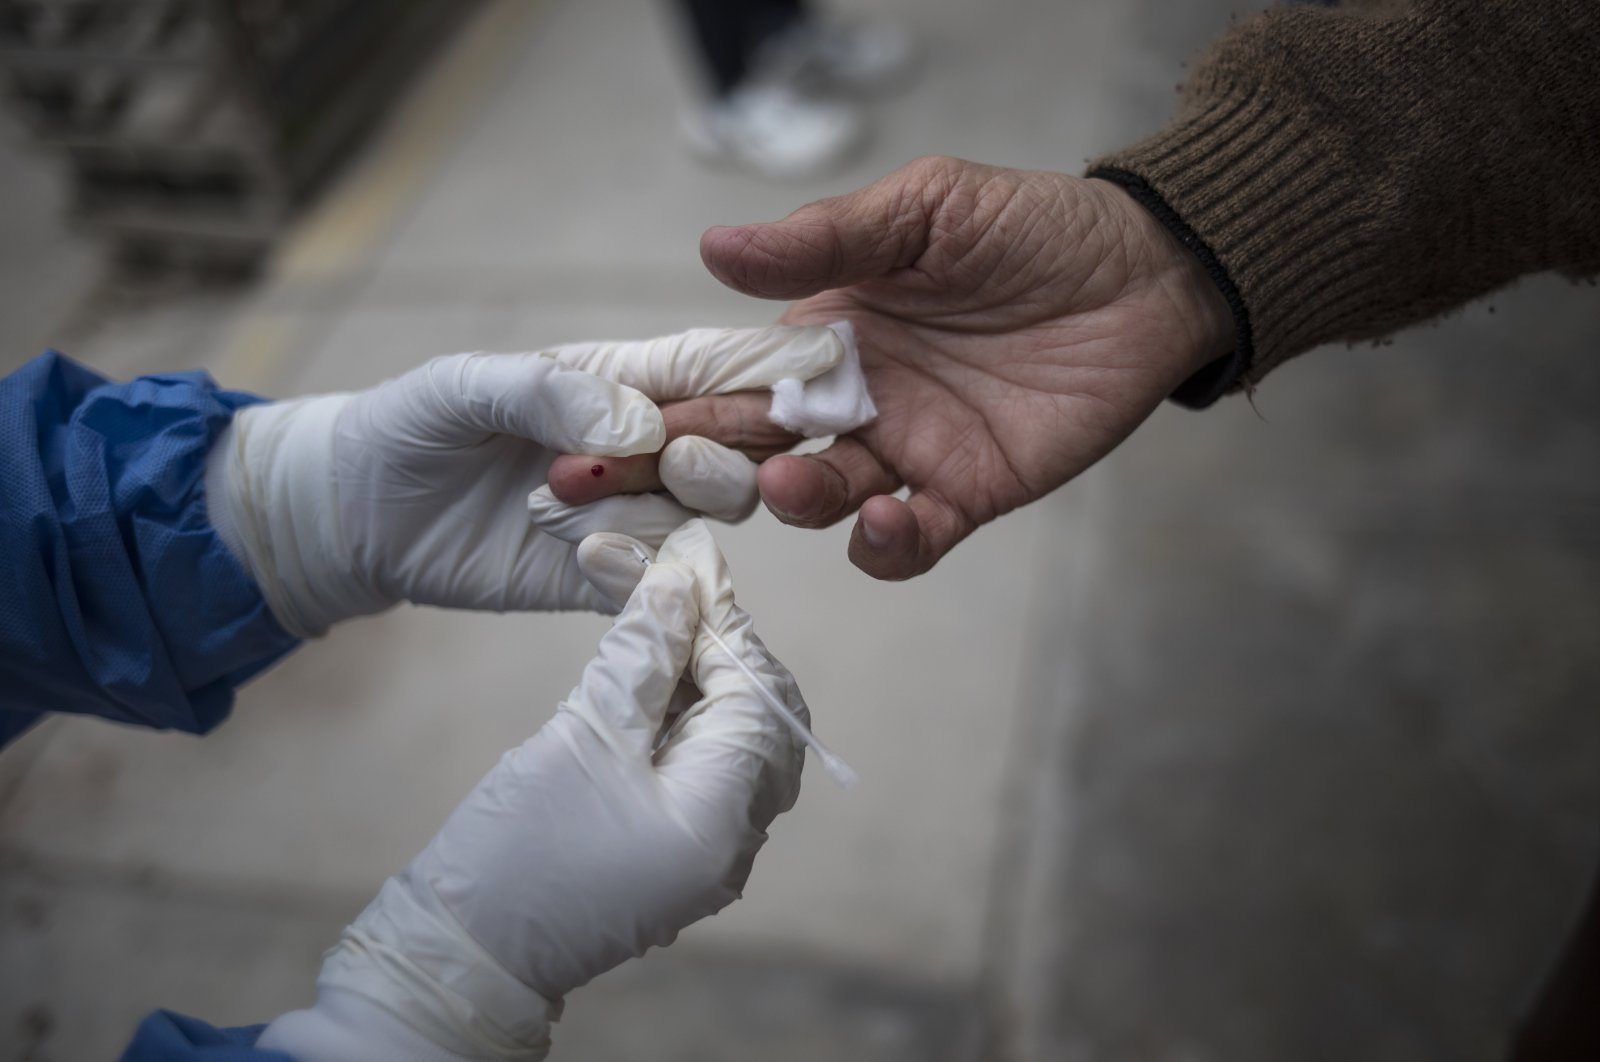 A healthcare worker takes a blood sample during a house-to-house rapid antibody test drive in Villa el Salvador, on the outskirts of Lima, Peru, June 30, 2020. (AP Photo)